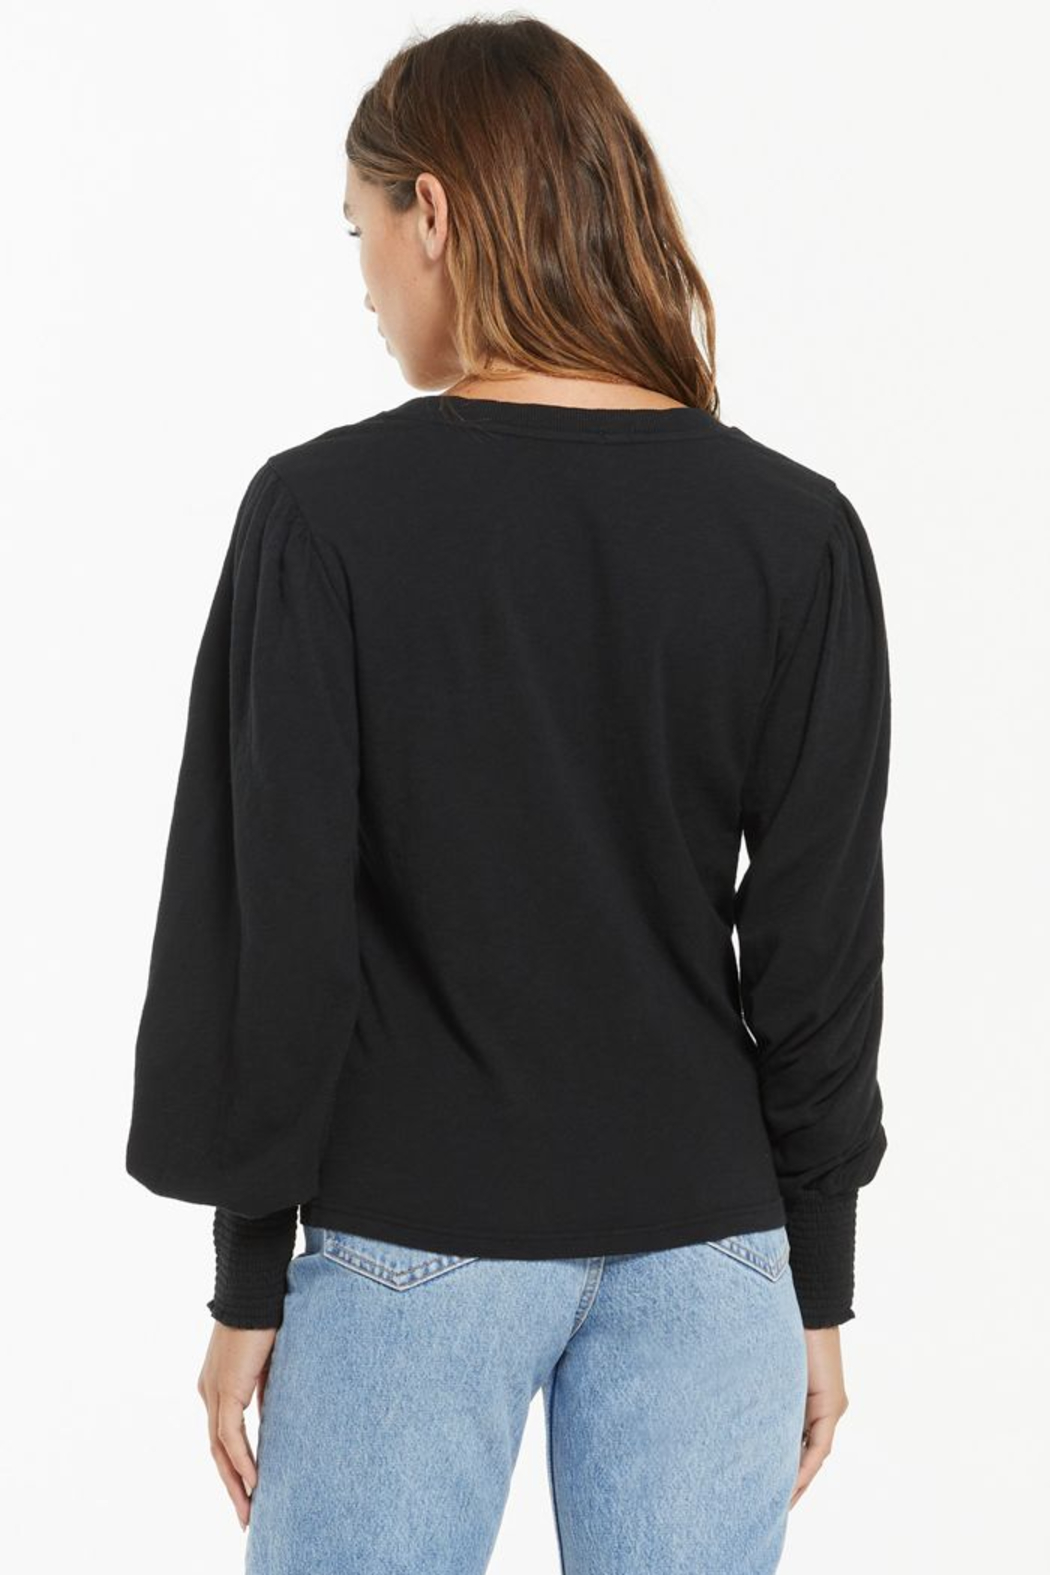 z supply Emery Long Sleeve Top - Front Full Image